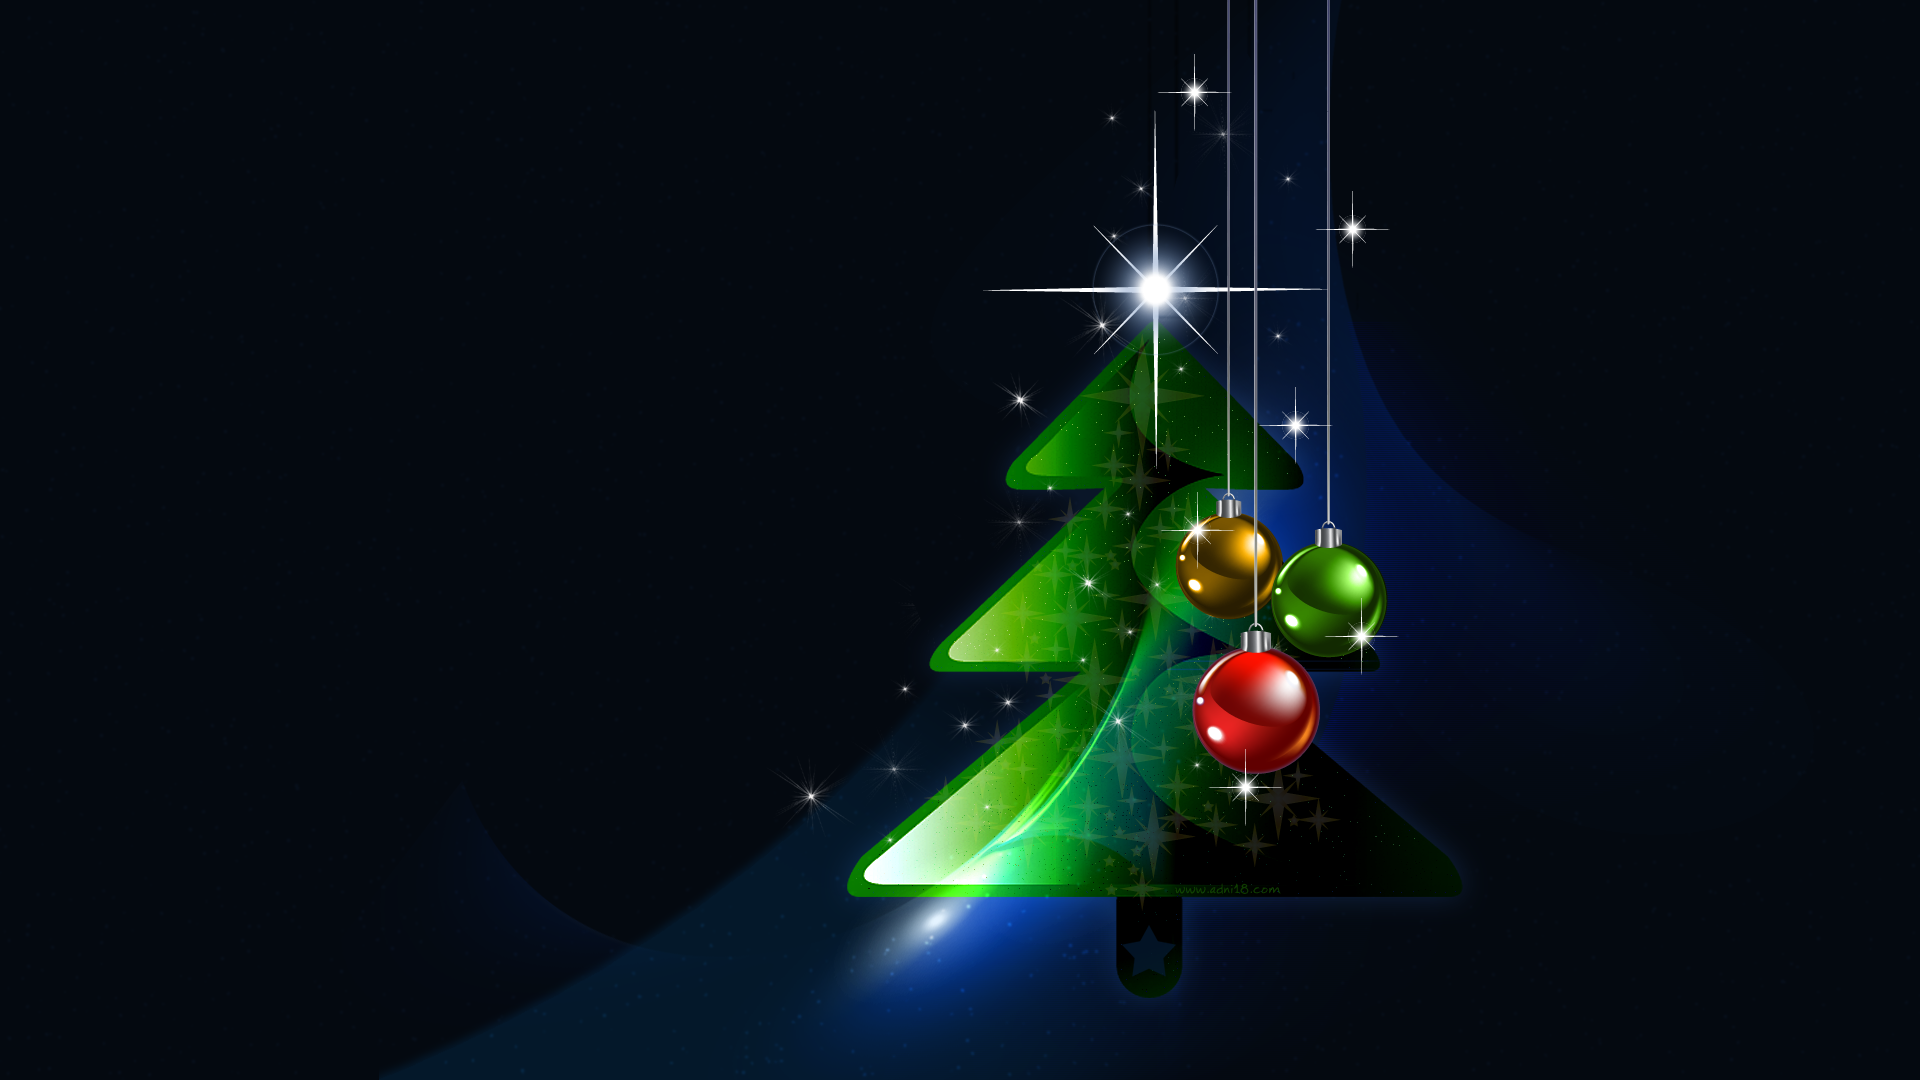 Happy New Year and Merry Christmas Desktop Wallpapers FREE on Latoro 1920x1080